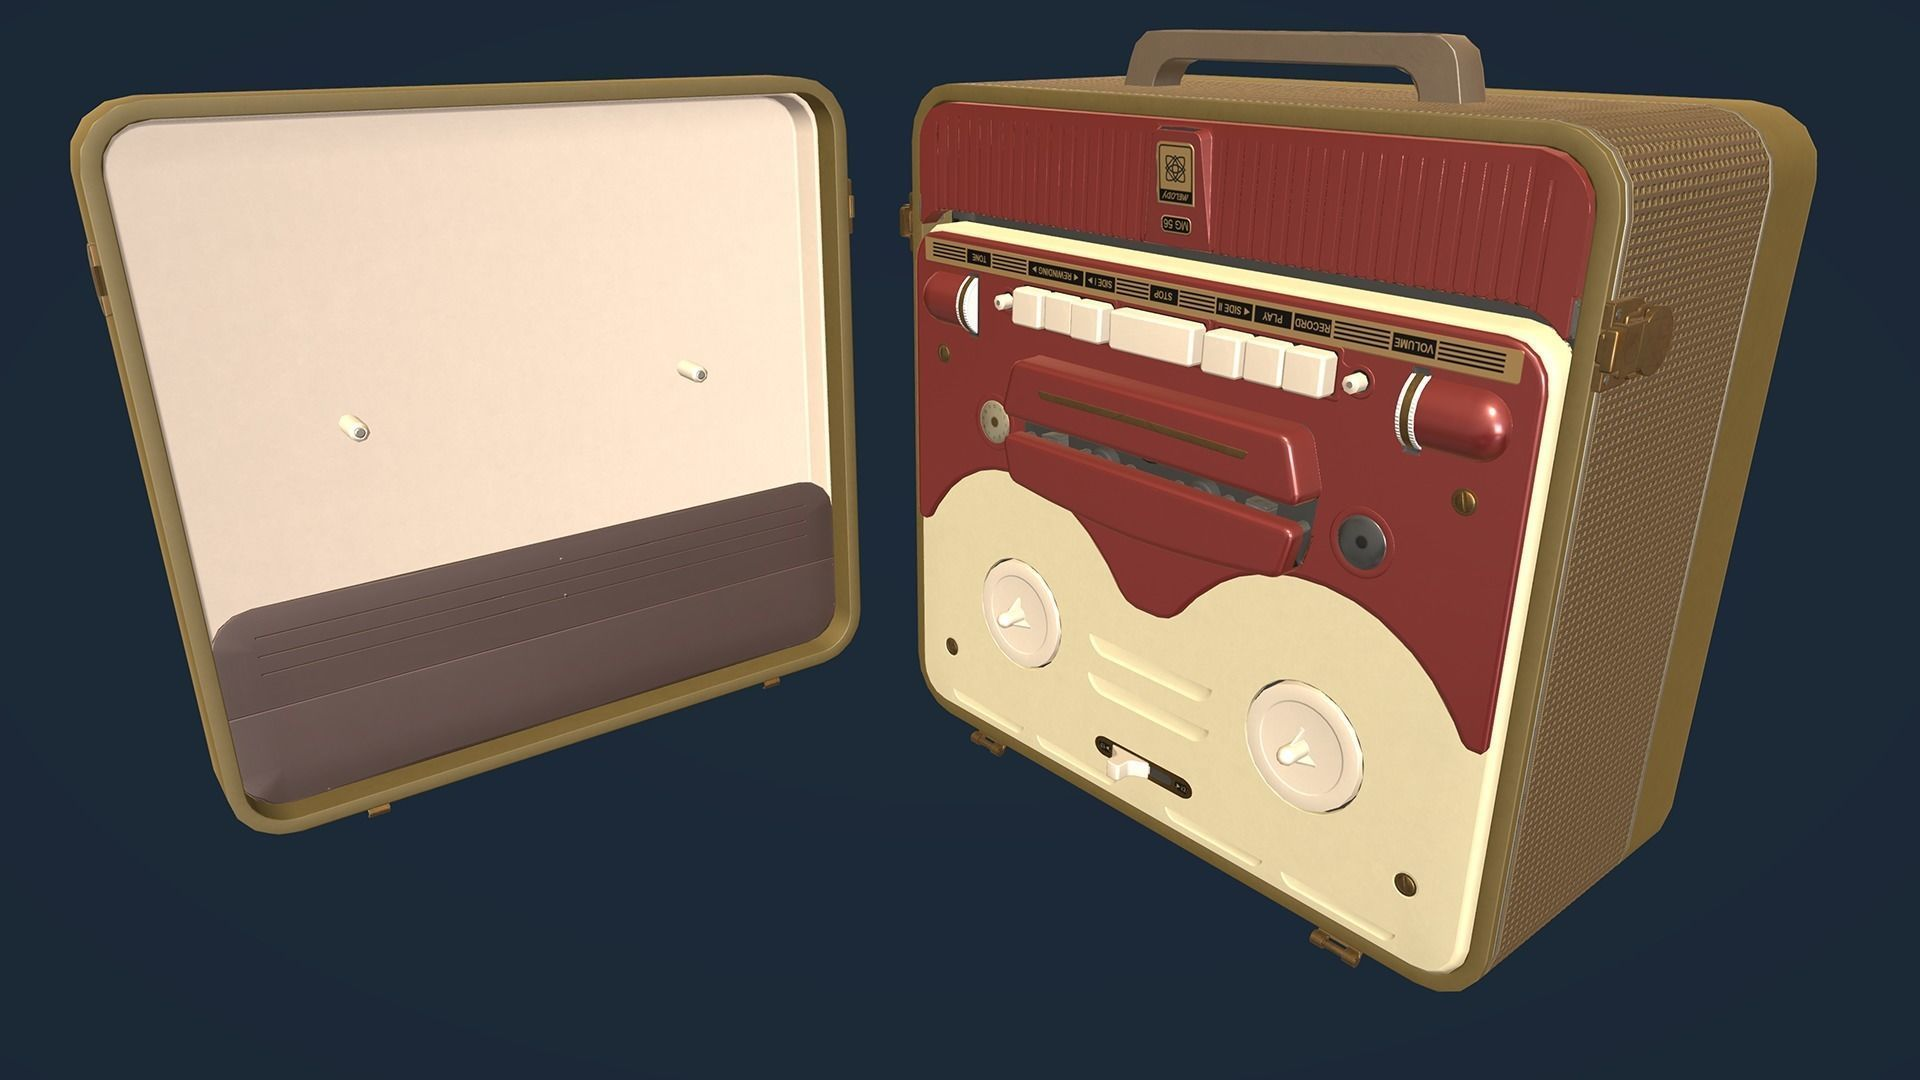 MG56 Retro Bobbin Tape Recorder Lowpoly | 3D model